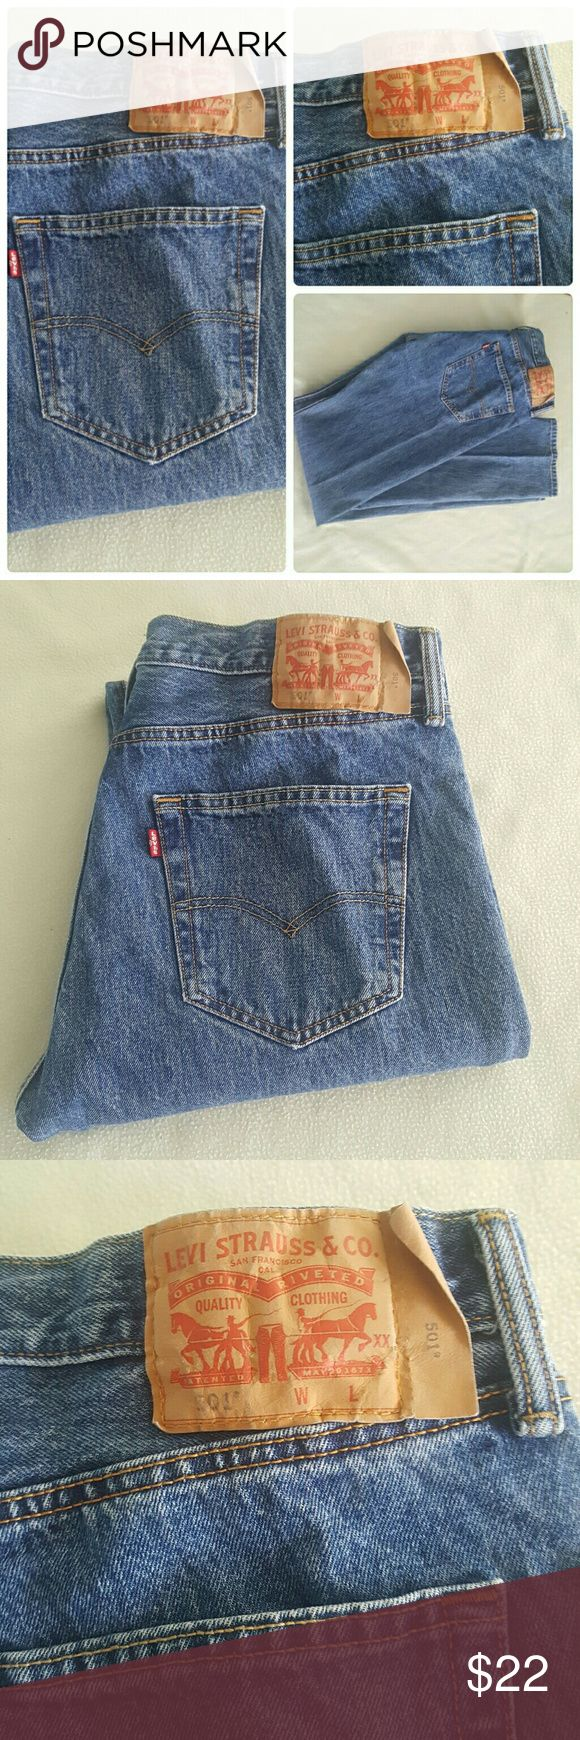 Levi's 501 button fly jeans Levi's 501 button fly jeans. 36 x 38 Levi's Jeans Relaxed